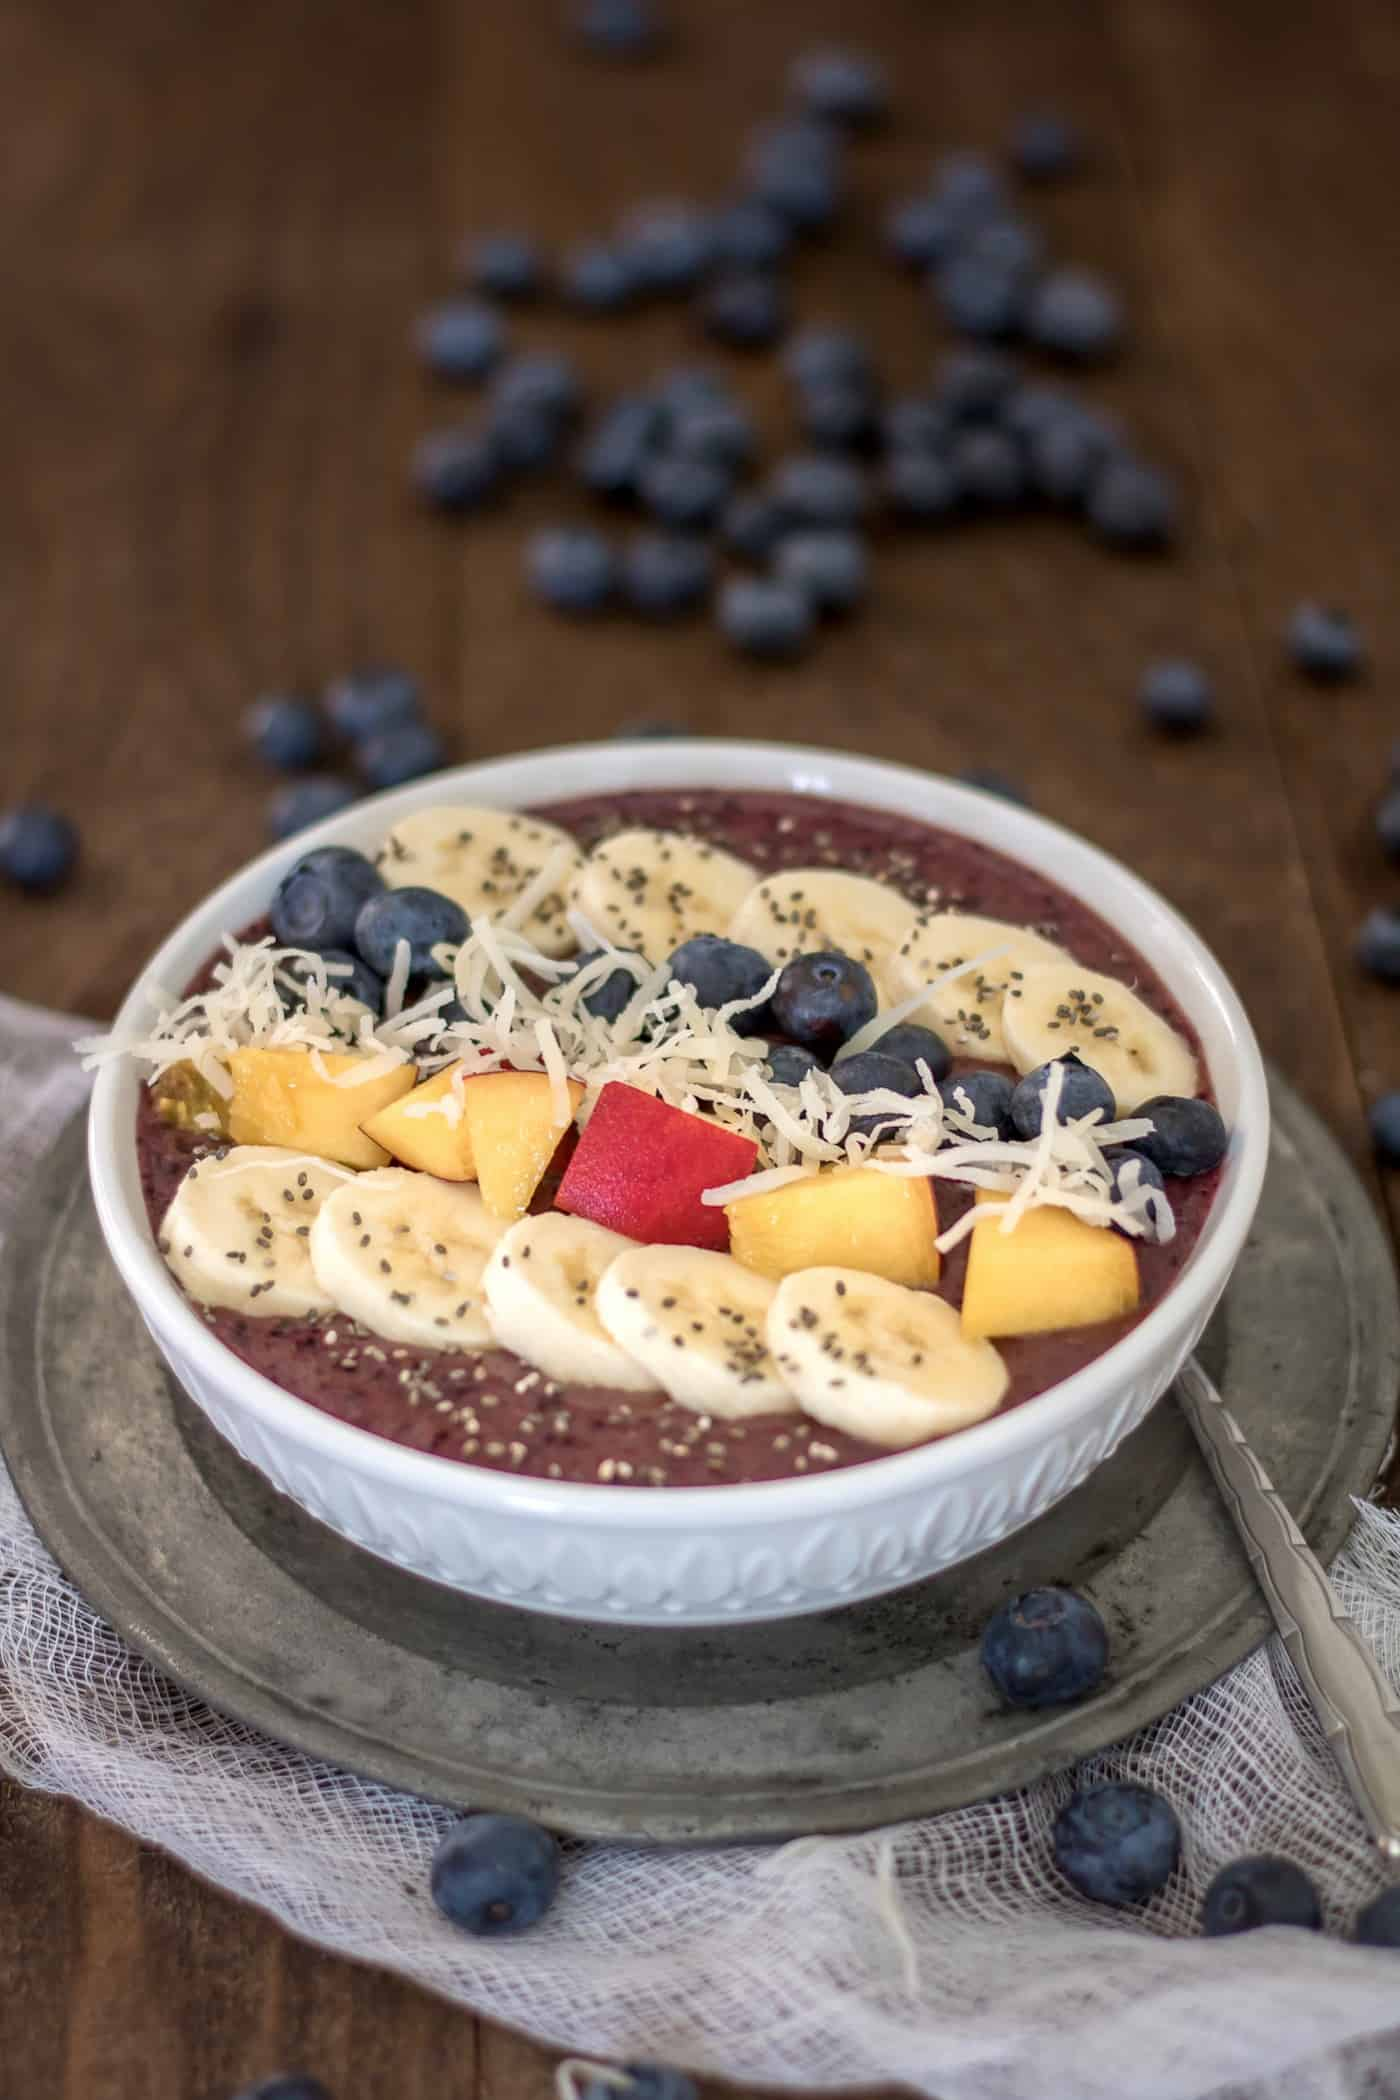 If you wish you could eat ice cream for breakfast, you'll love a smoothie bowl! It's healthy and filling with delicious fresh fruits. Nom nom!